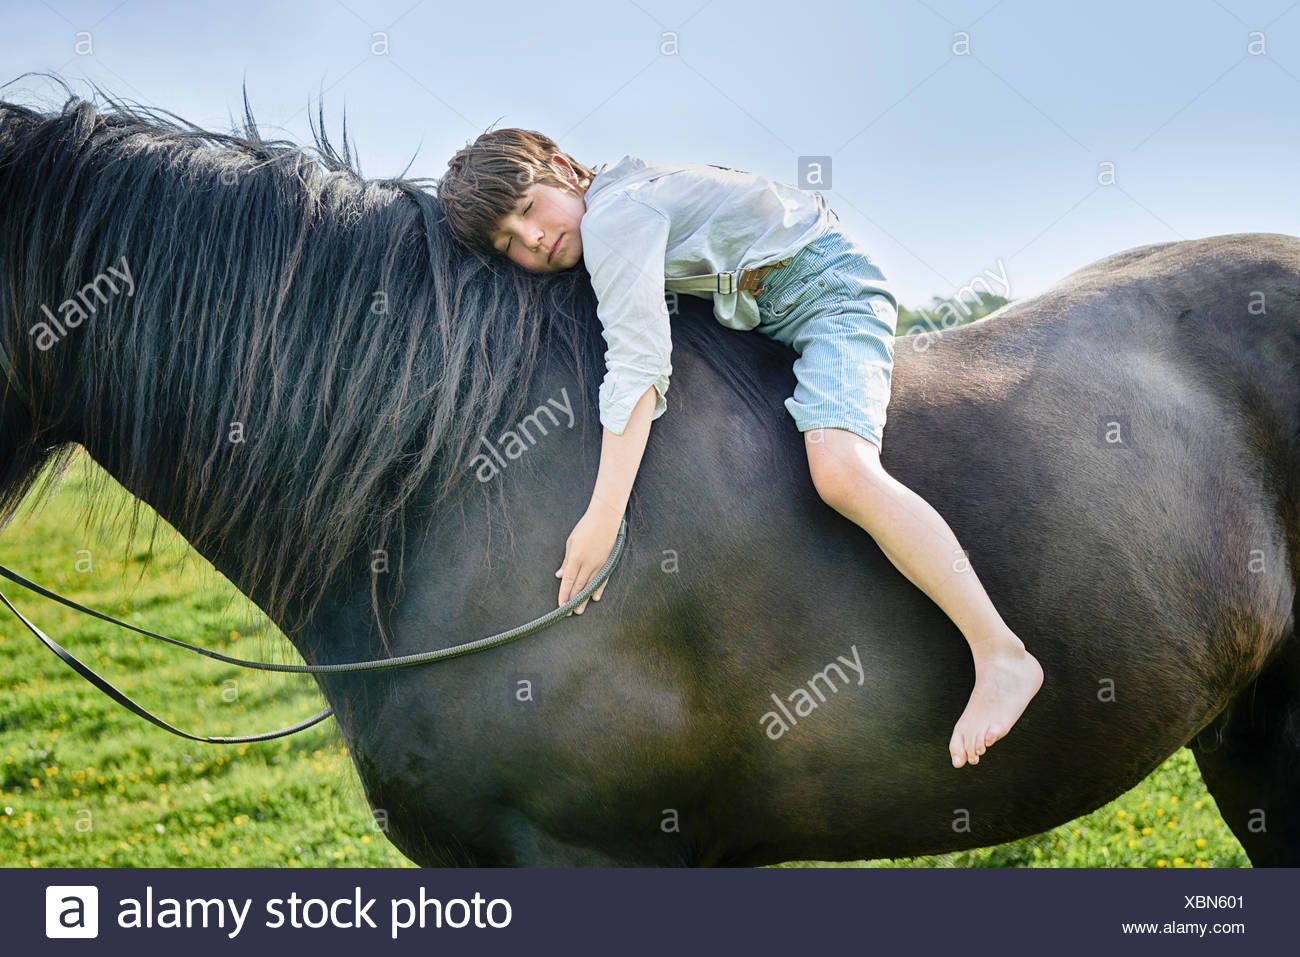 Cropped shot of boy leaning forward with eyes closed on horse in field - Stock Image